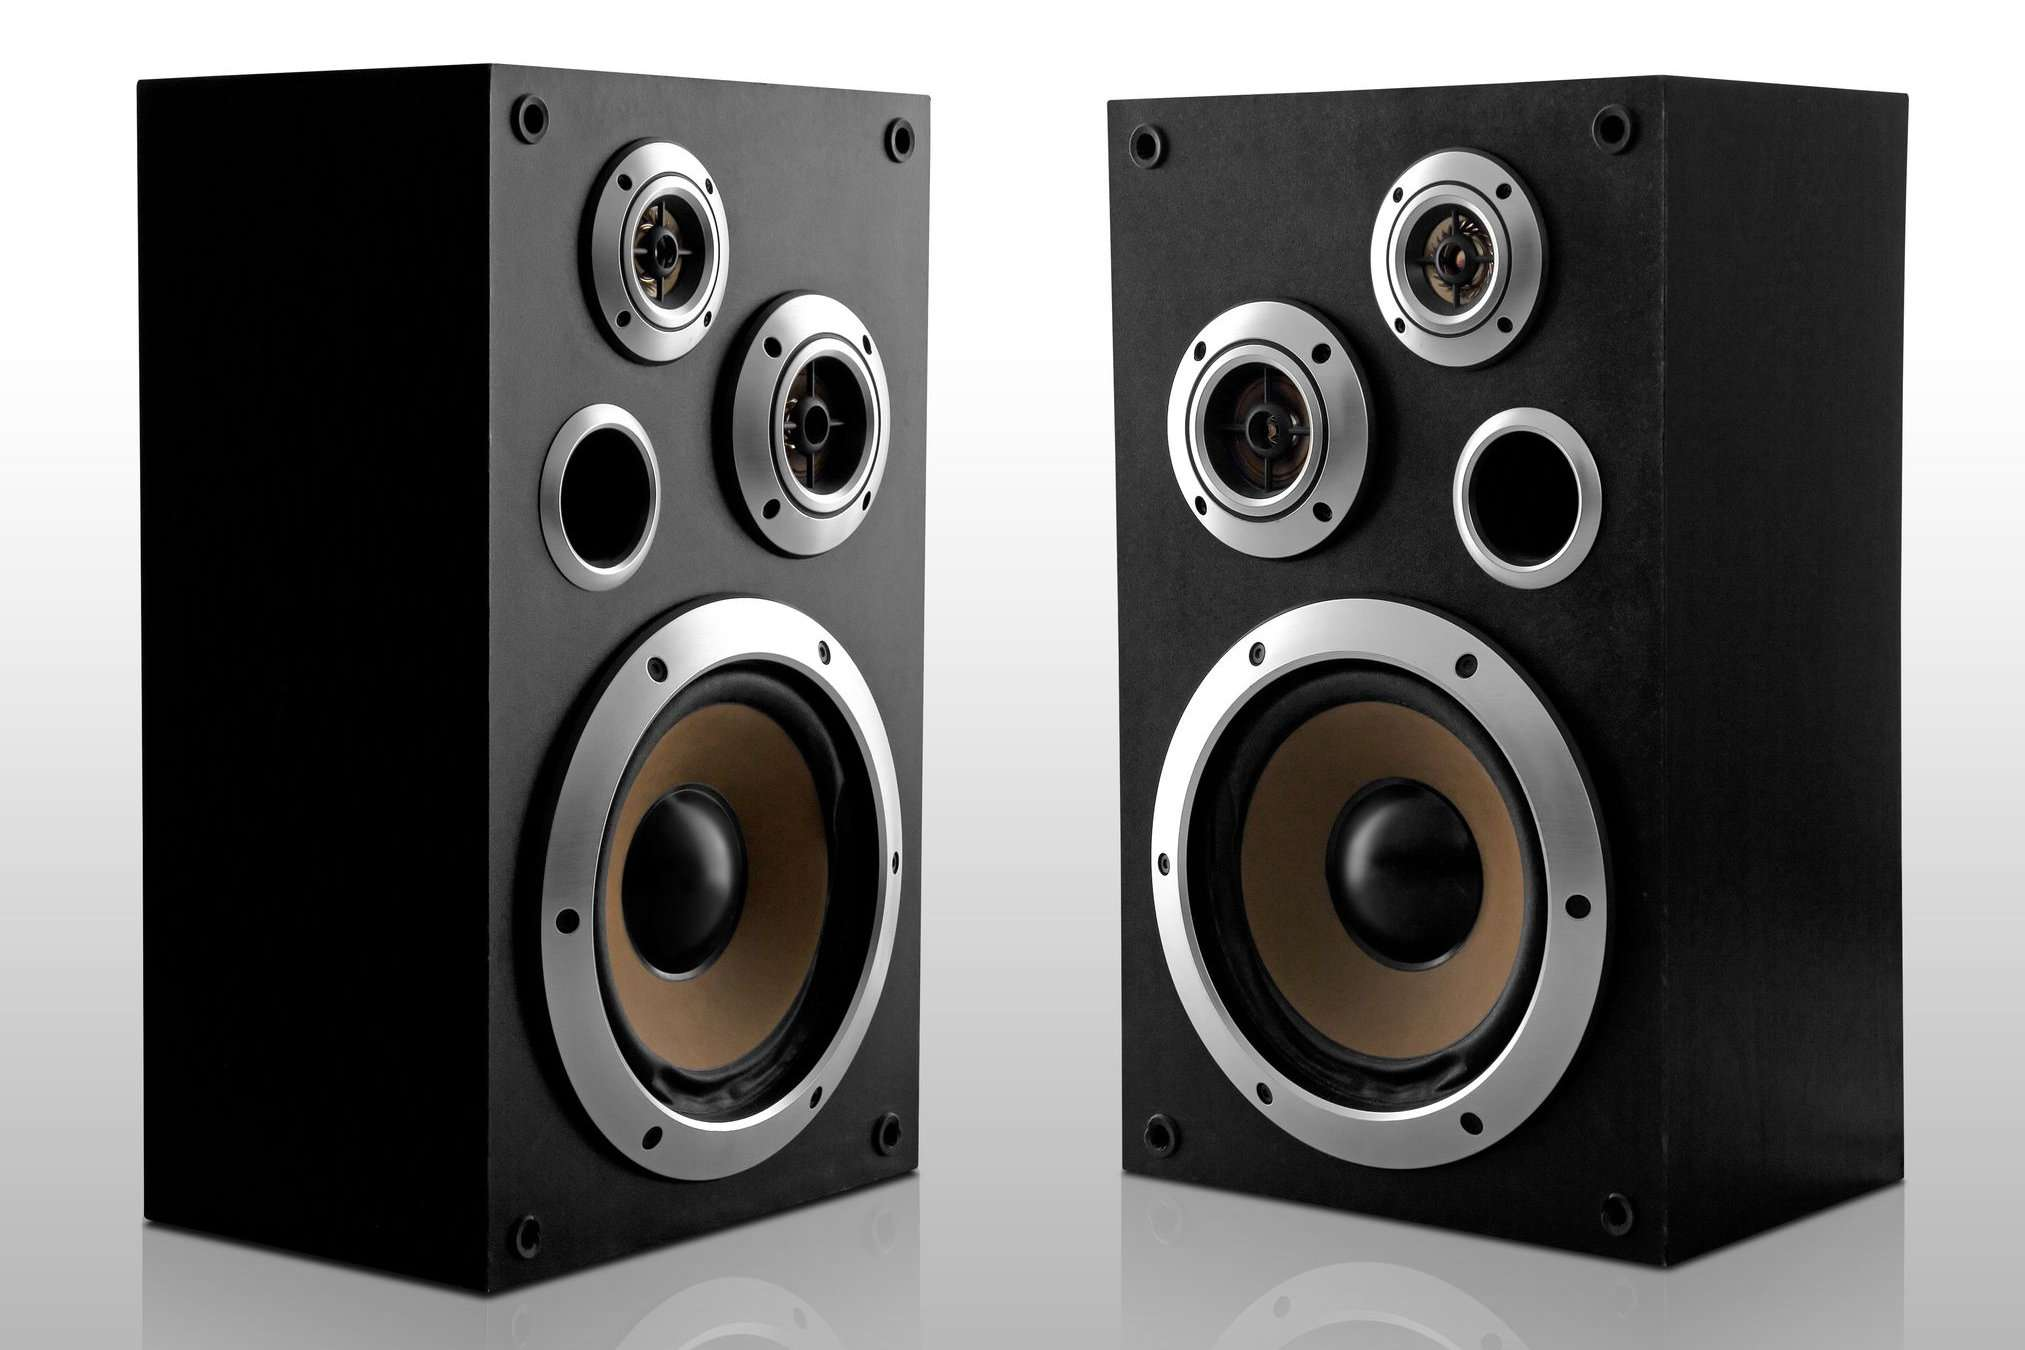 A pair of stereo speakers.